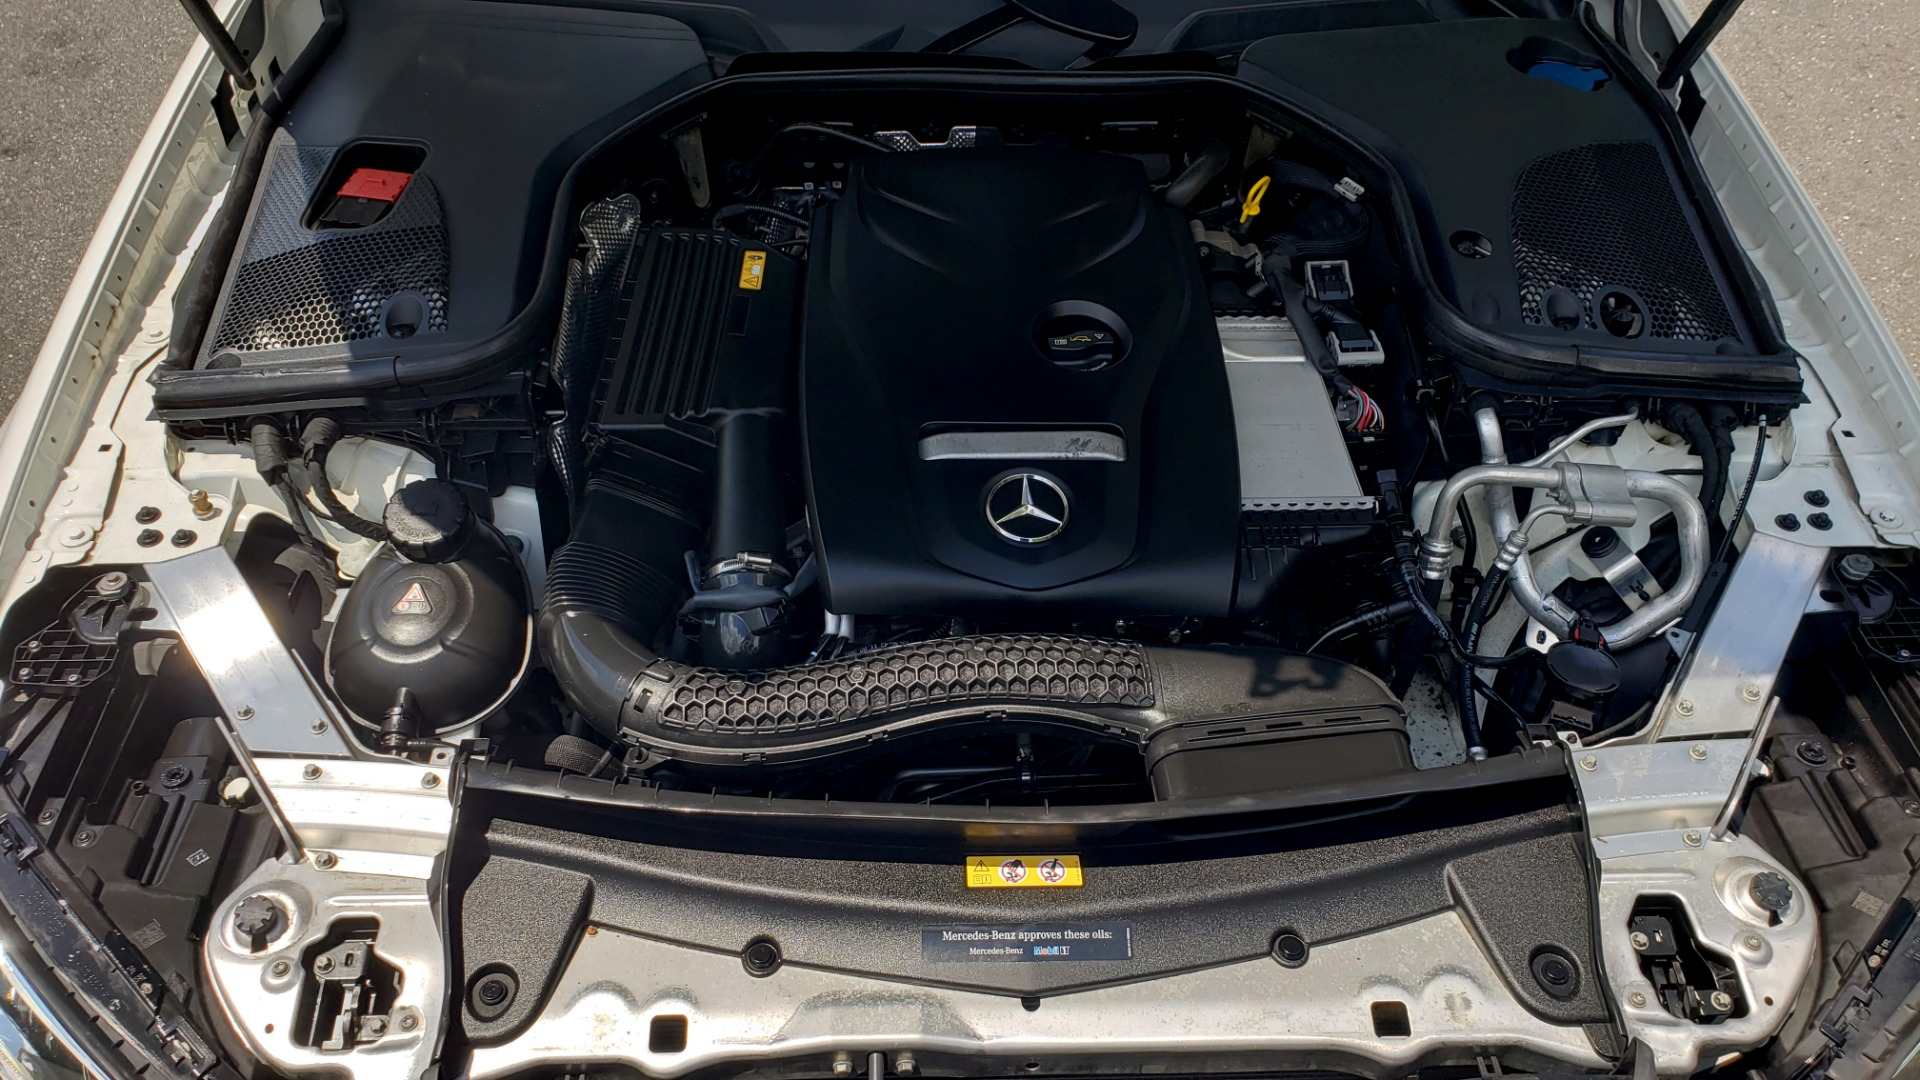 Used 2017 Mercedes-Benz E-CLASS E 300 PREMIUM / SPORT / NAV / SUNROOF / HTD STS / BSM / REARVIEW for sale $27,995 at Formula Imports in Charlotte NC 28227 11